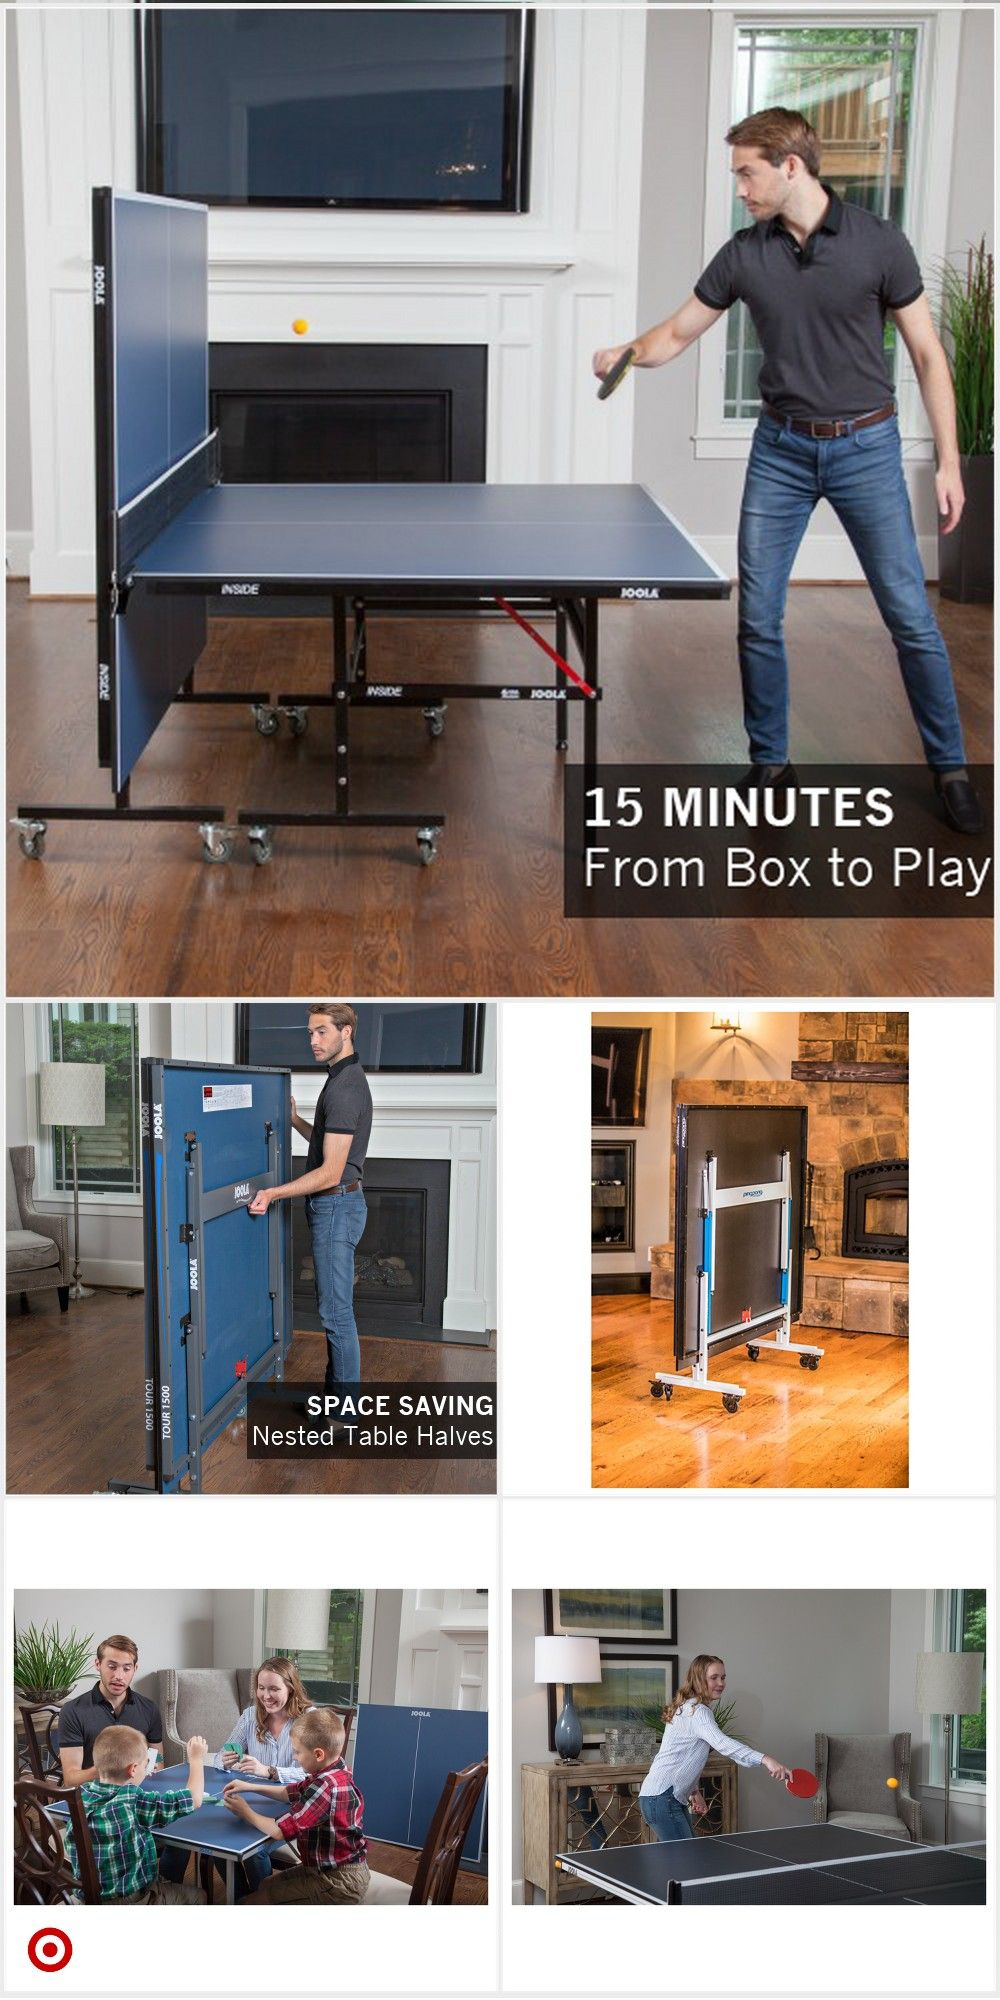 Table Tennis Room Design: Pin By Jennifer Fortin On Home Decor